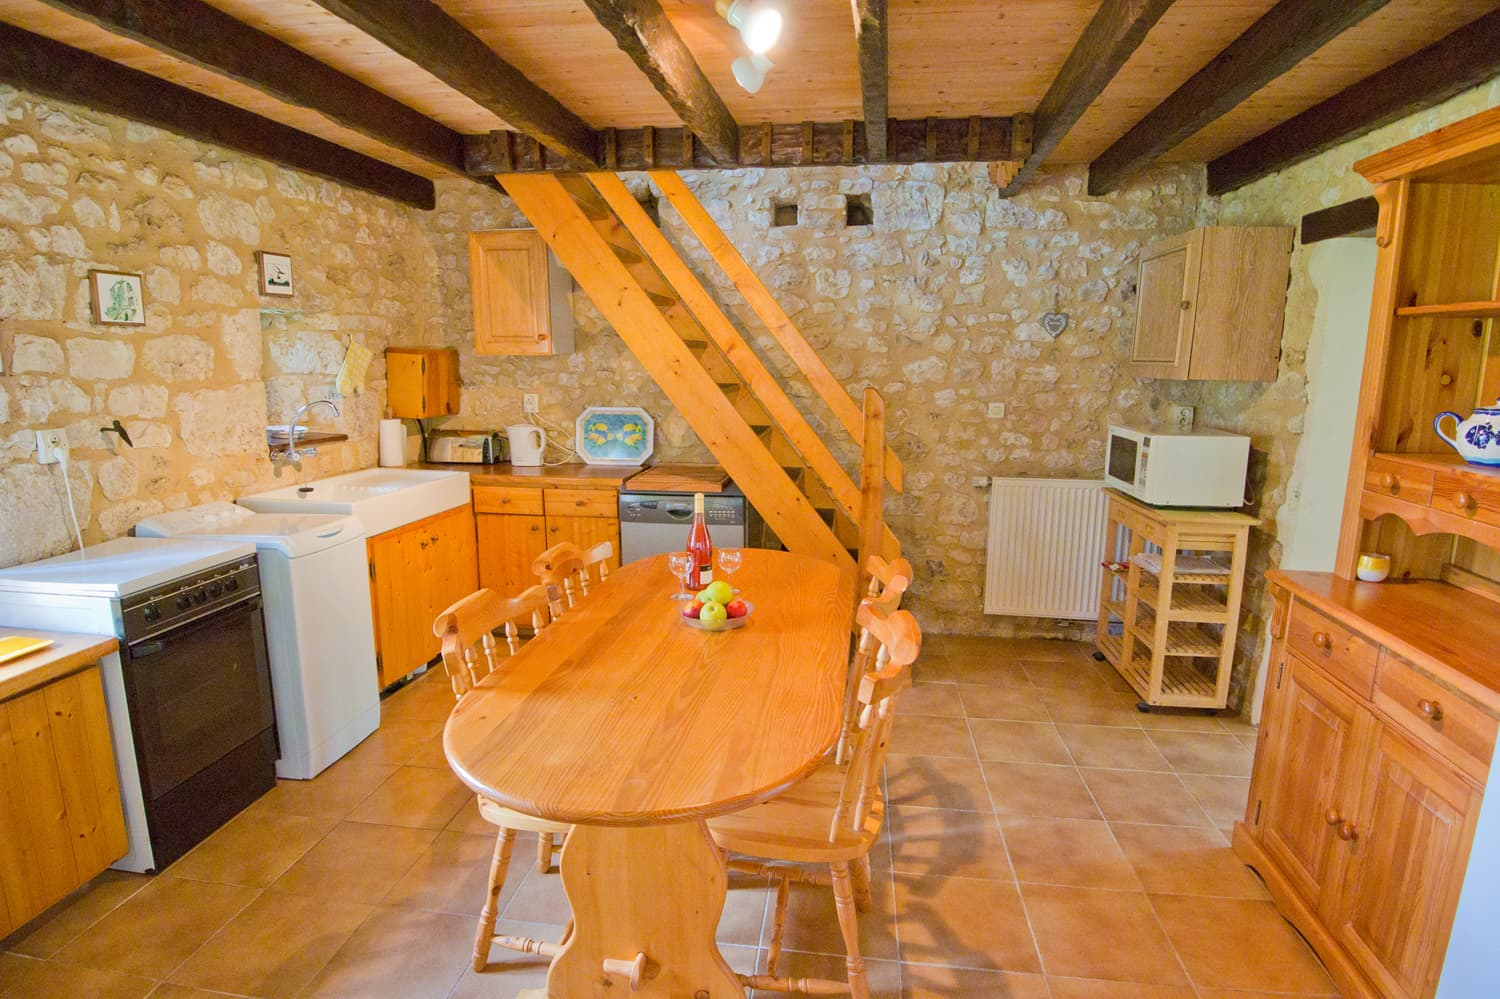 Kitchen in Dordogne holiday home